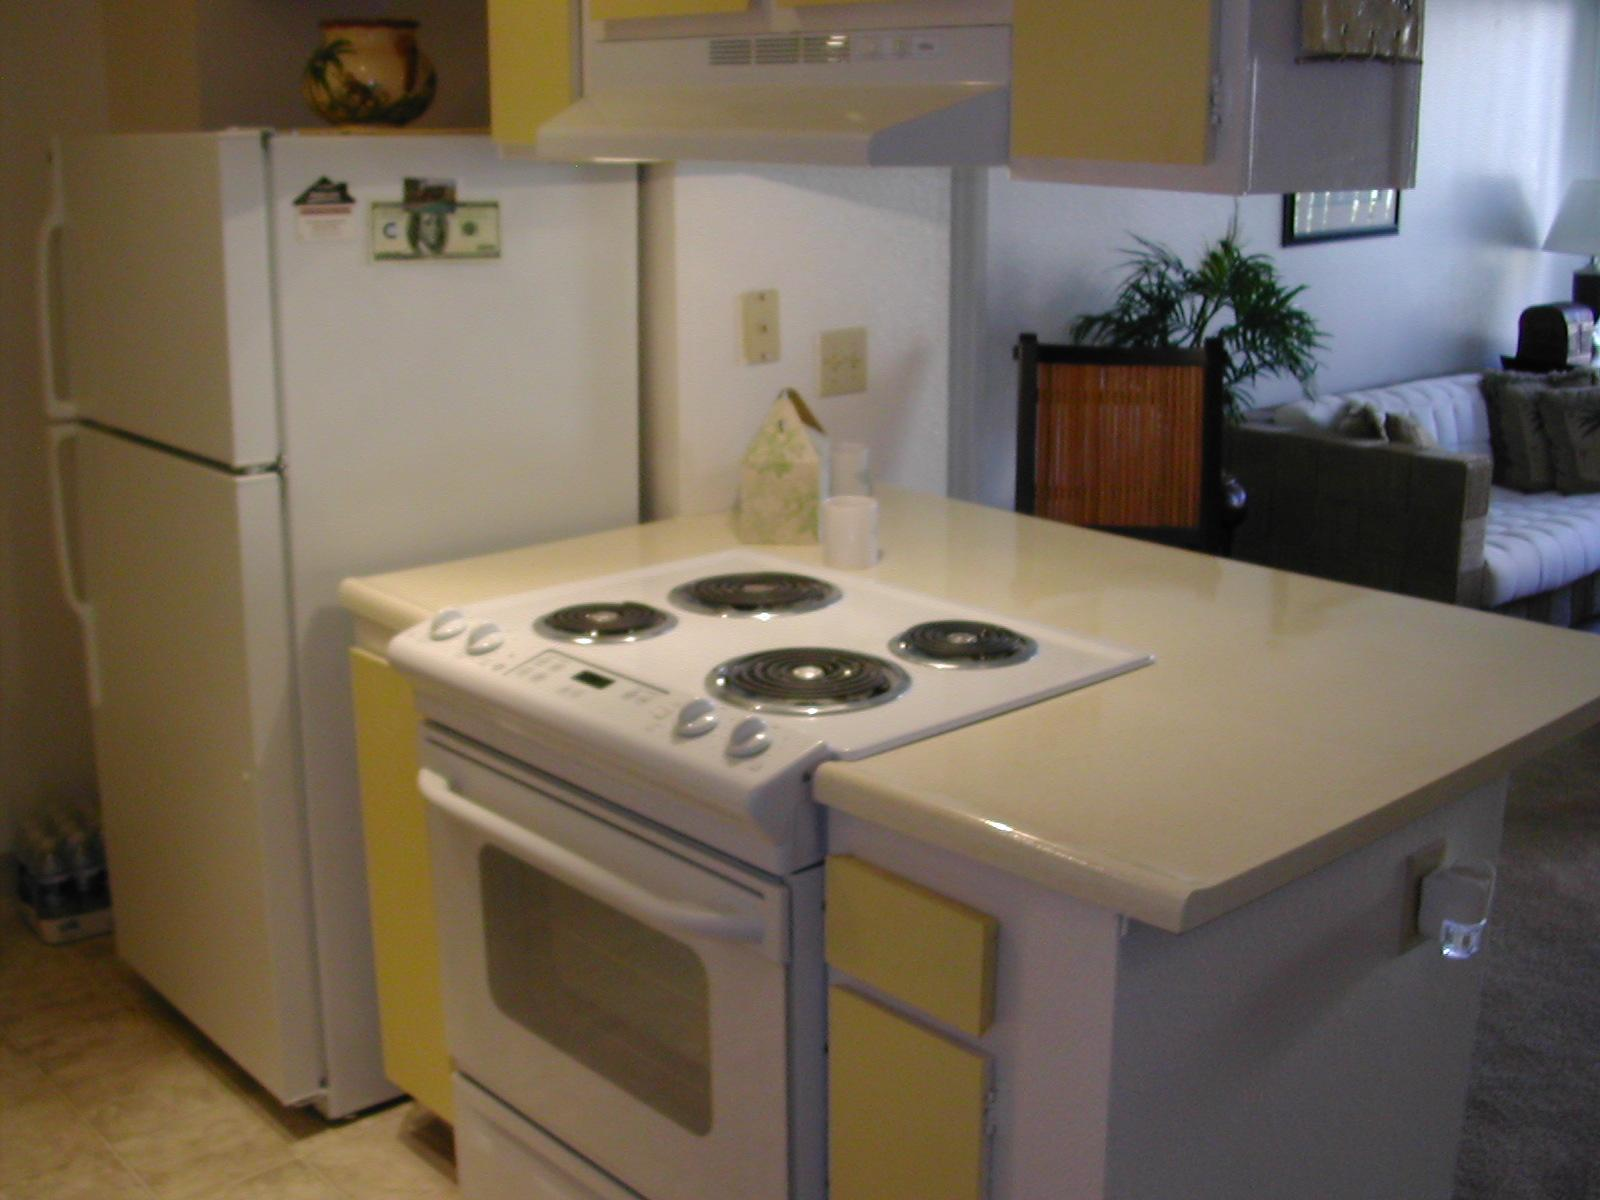 1,050 sq. ft. - 2 bathrooms - 3 bedrooms - in a... photo #1